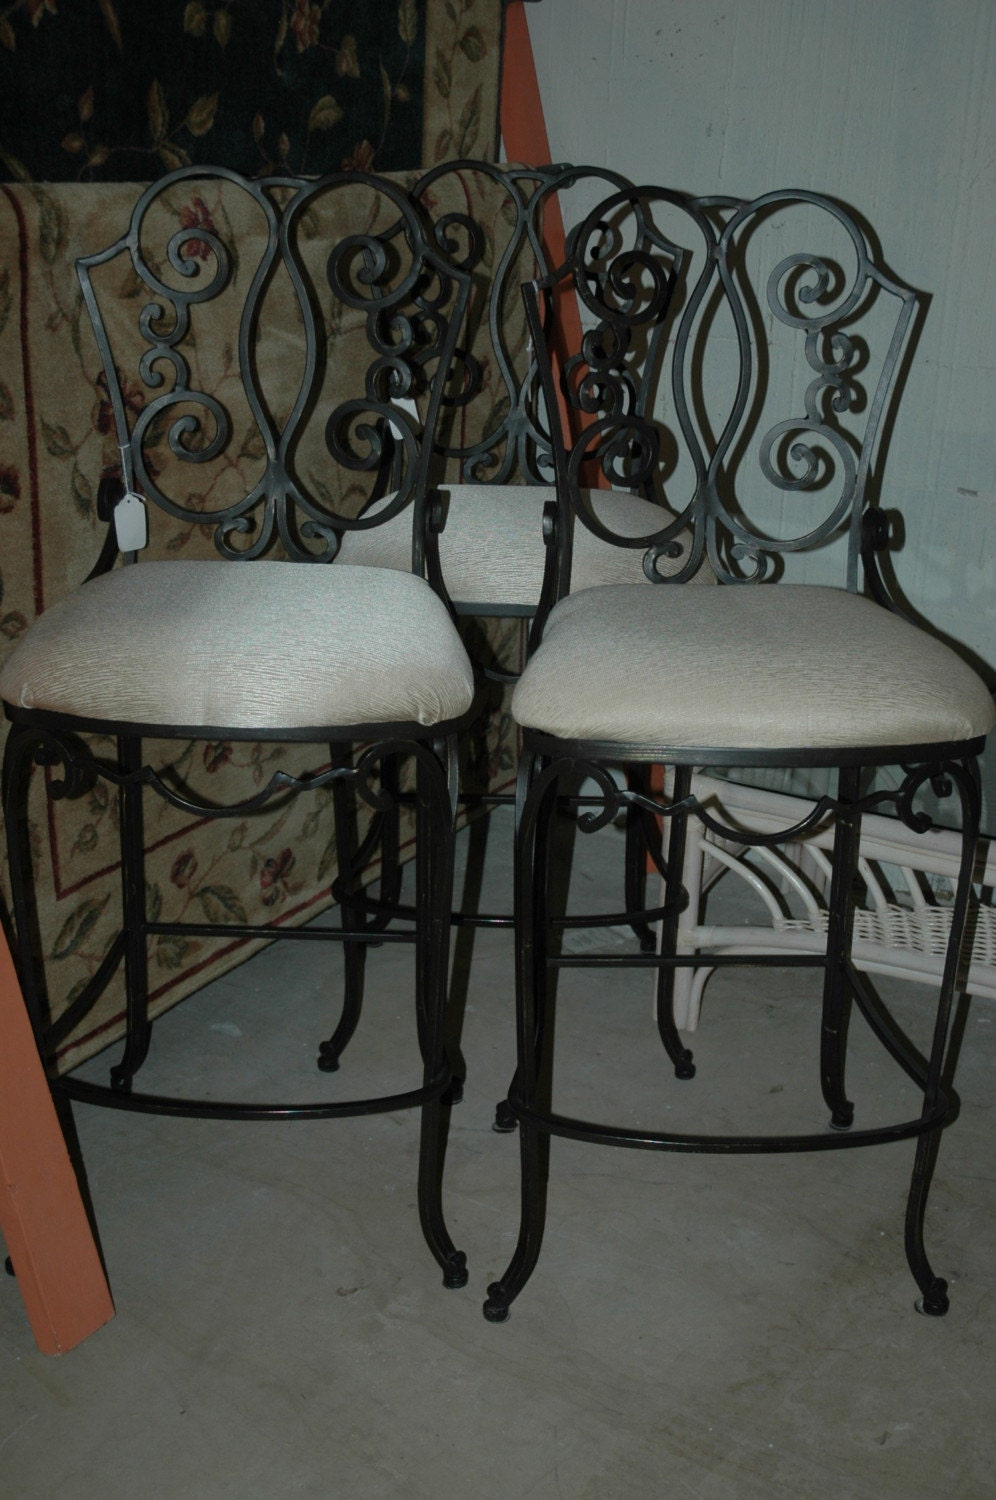 3 Scrolled Heavy Wrought Iron Bar Stools Ecru Color Cushions